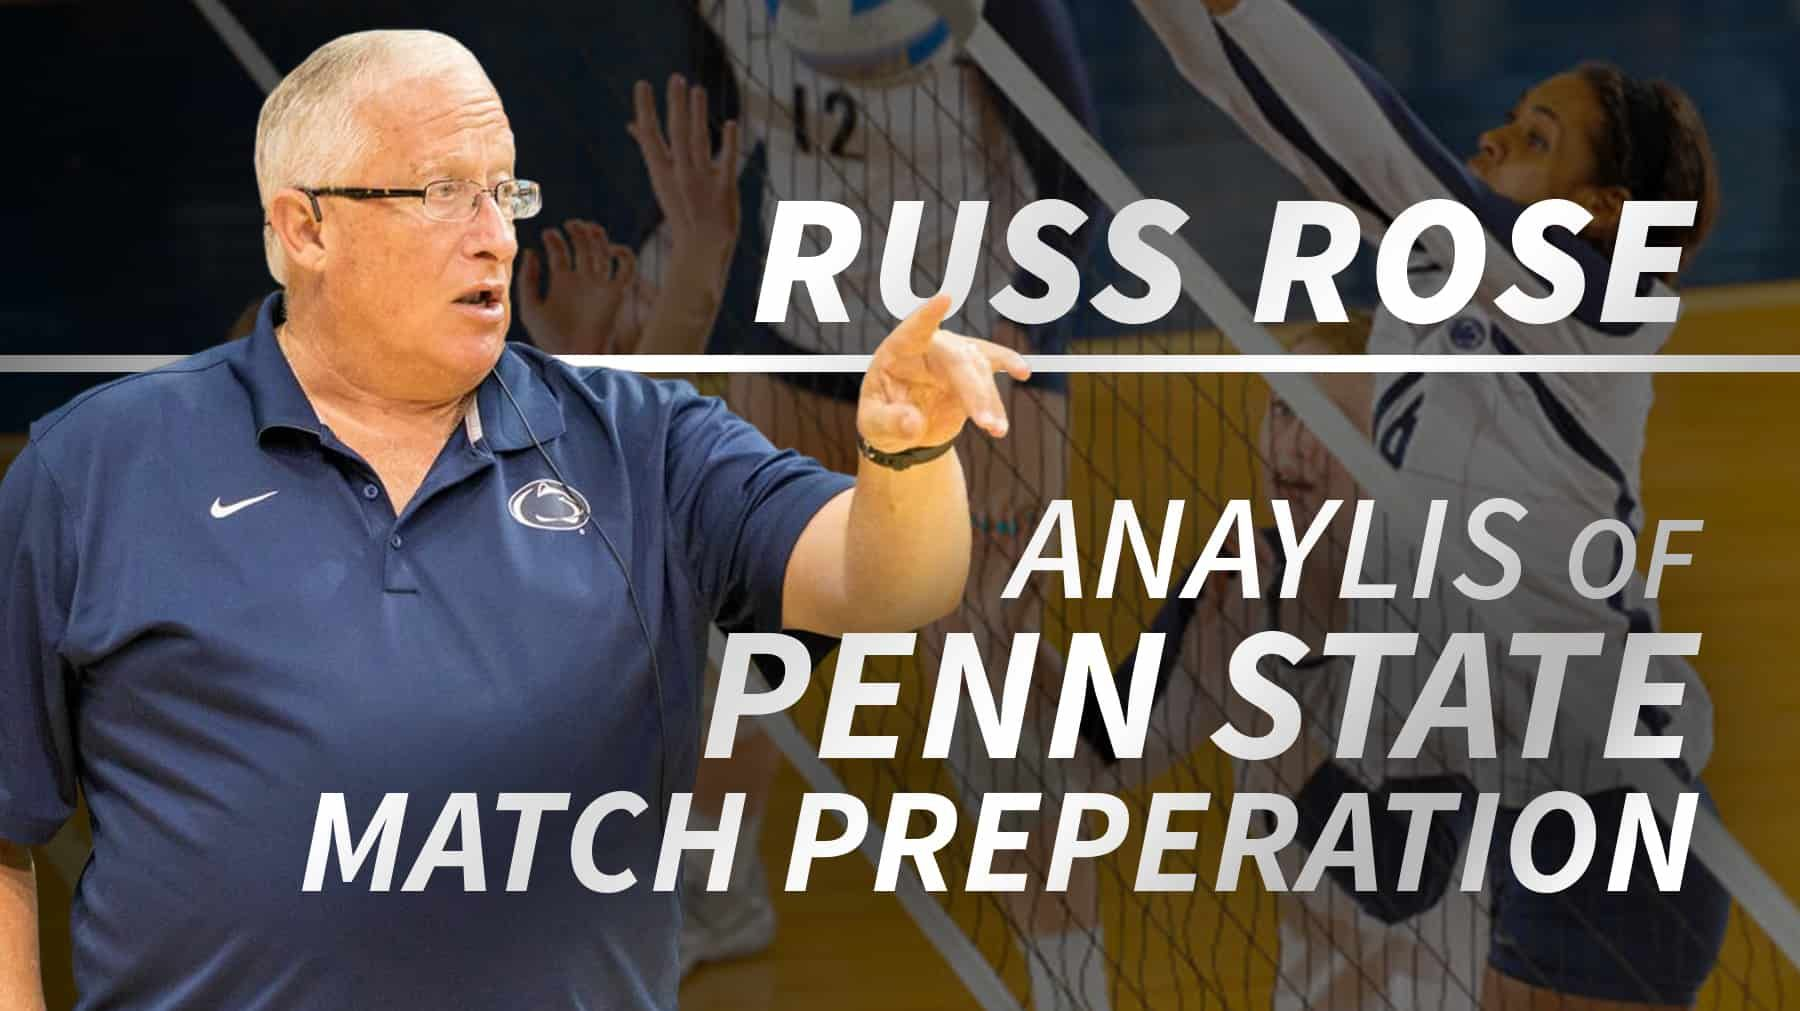 Russ Rose Analysis Of Penn State Match Preparation With Images Coaching Volleyball Volleyball Workouts Volleyball